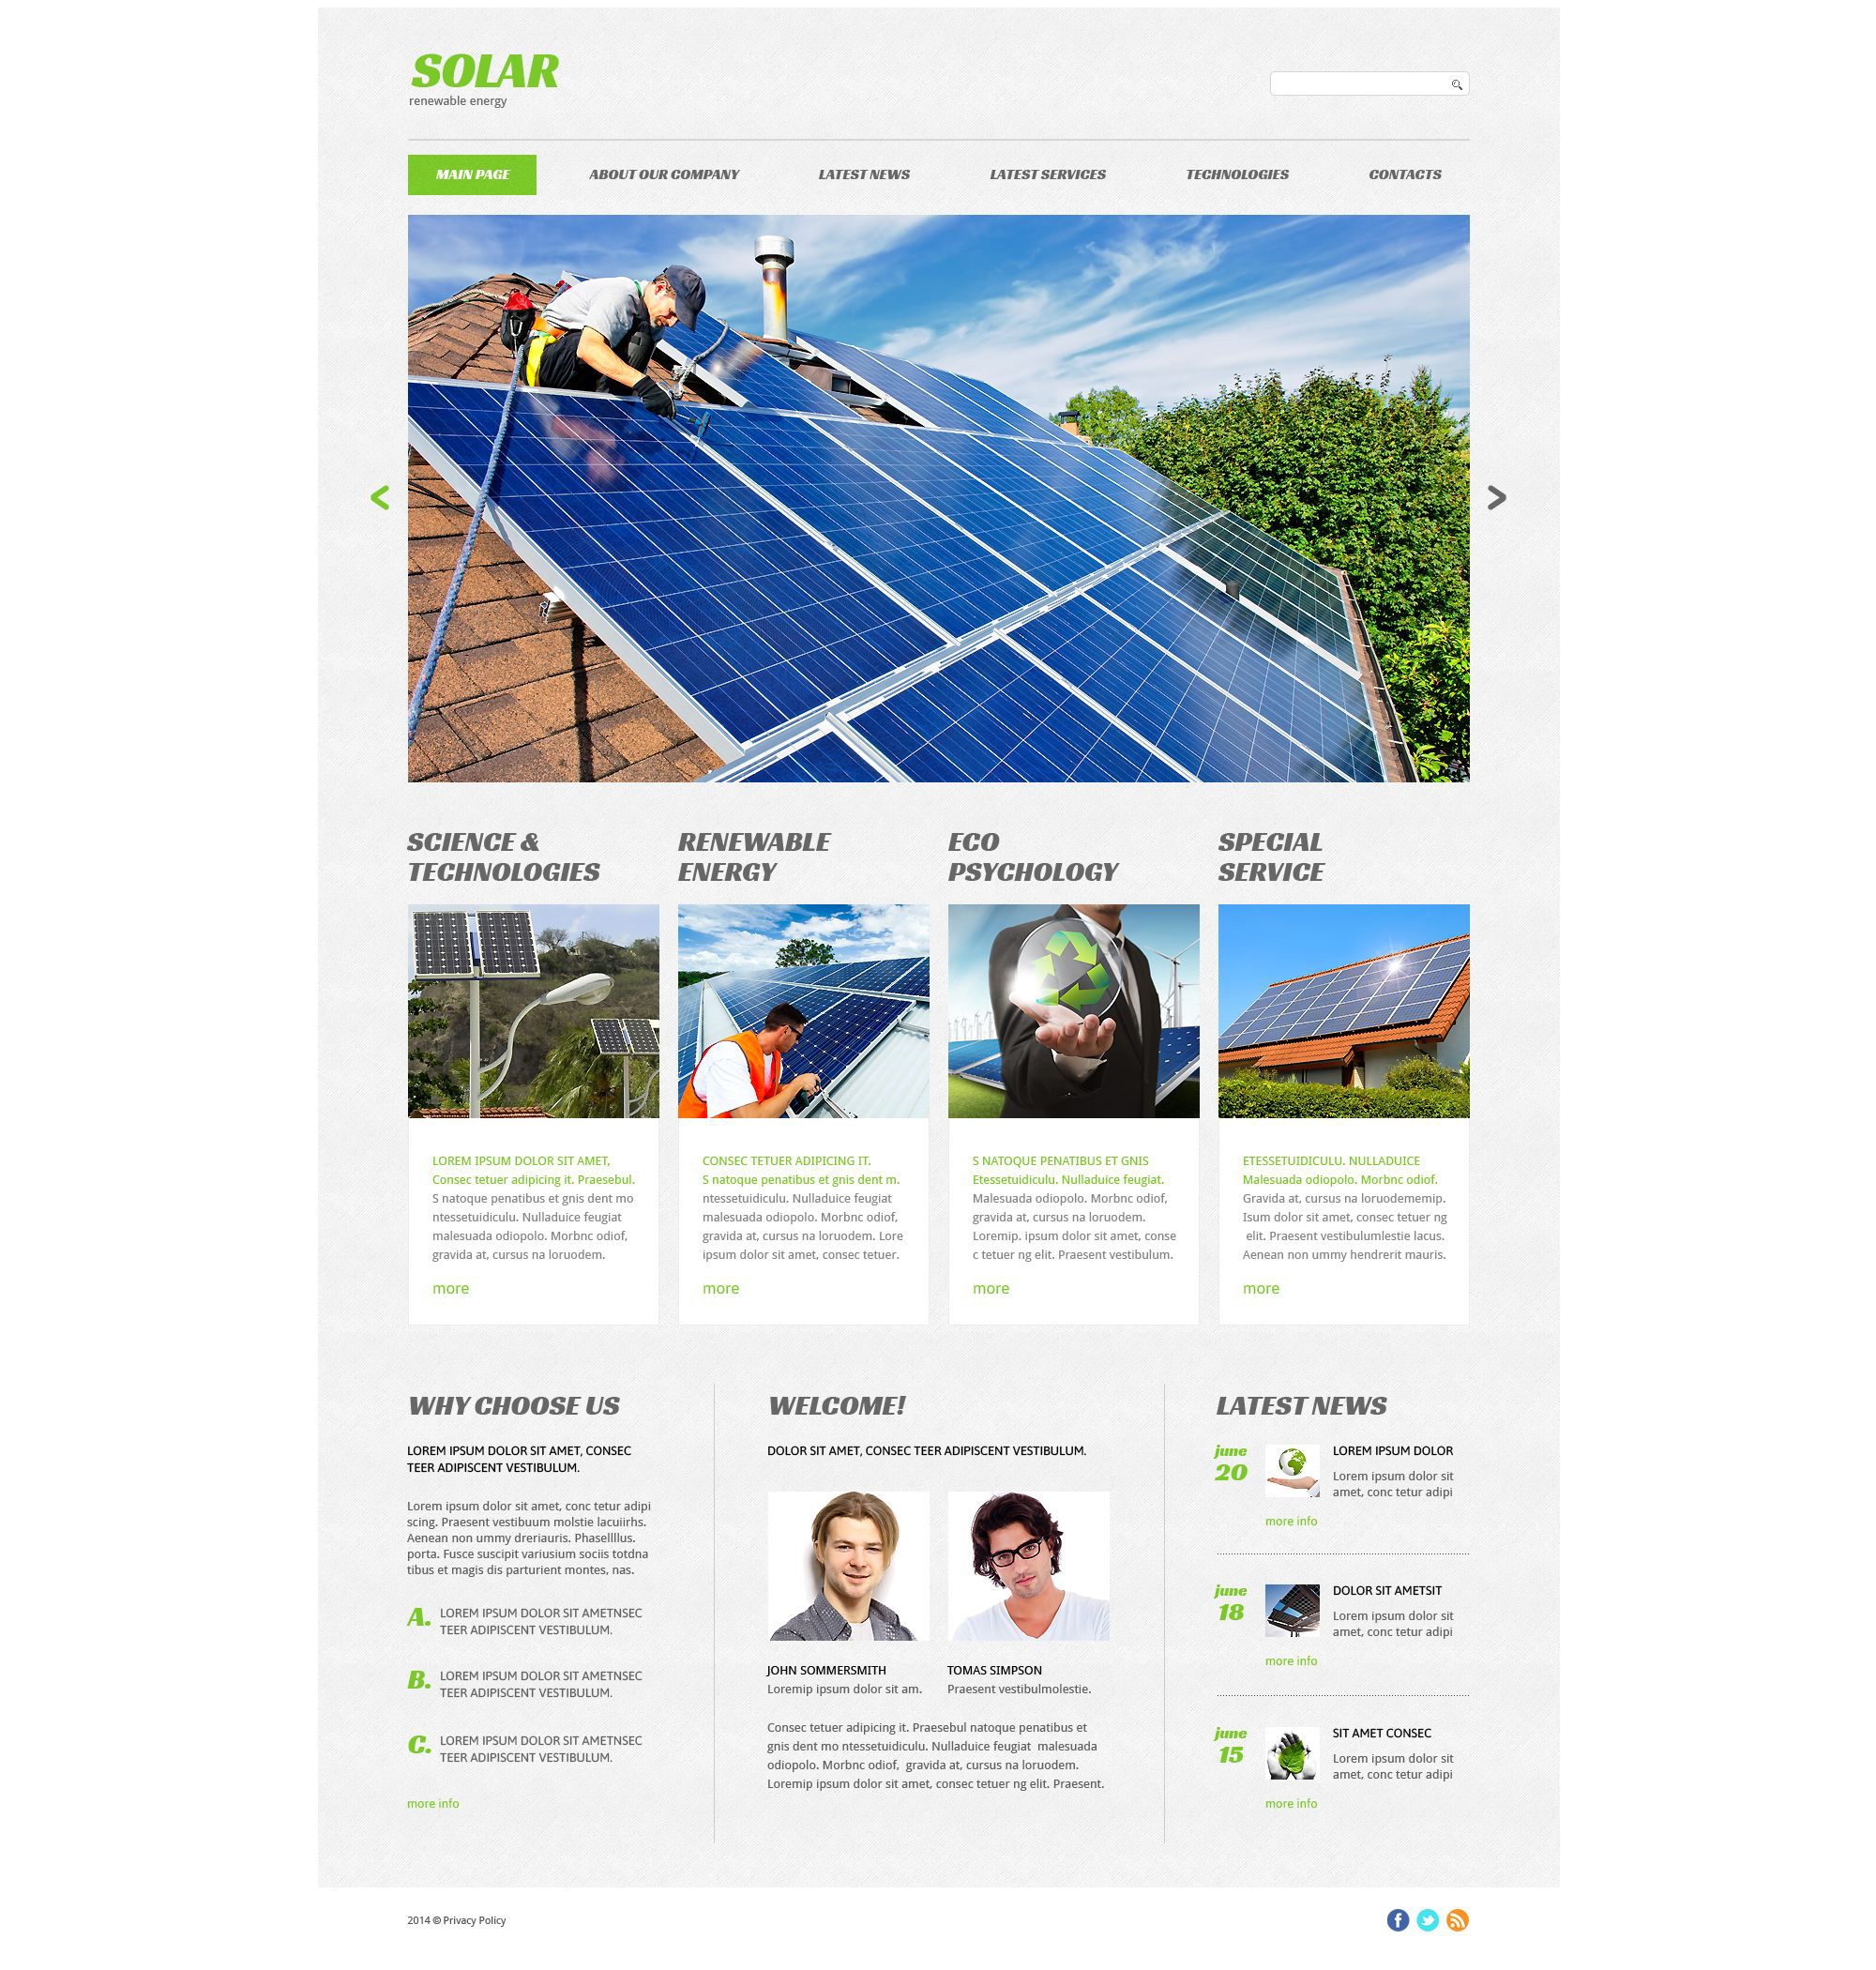 The Esolar Solar Energy Responsive Javascript Animated Design 53415, one of the best website templates of its kind (most popular, alternative power), also known as esolar solar energy website template, company system website template, ecological website template, sun website template, clean environment website template, alternative website template, warm website template, heat and related with esolar solar energy, company system, ecological, sun, clean environment, alternative, warm, heat, etc.